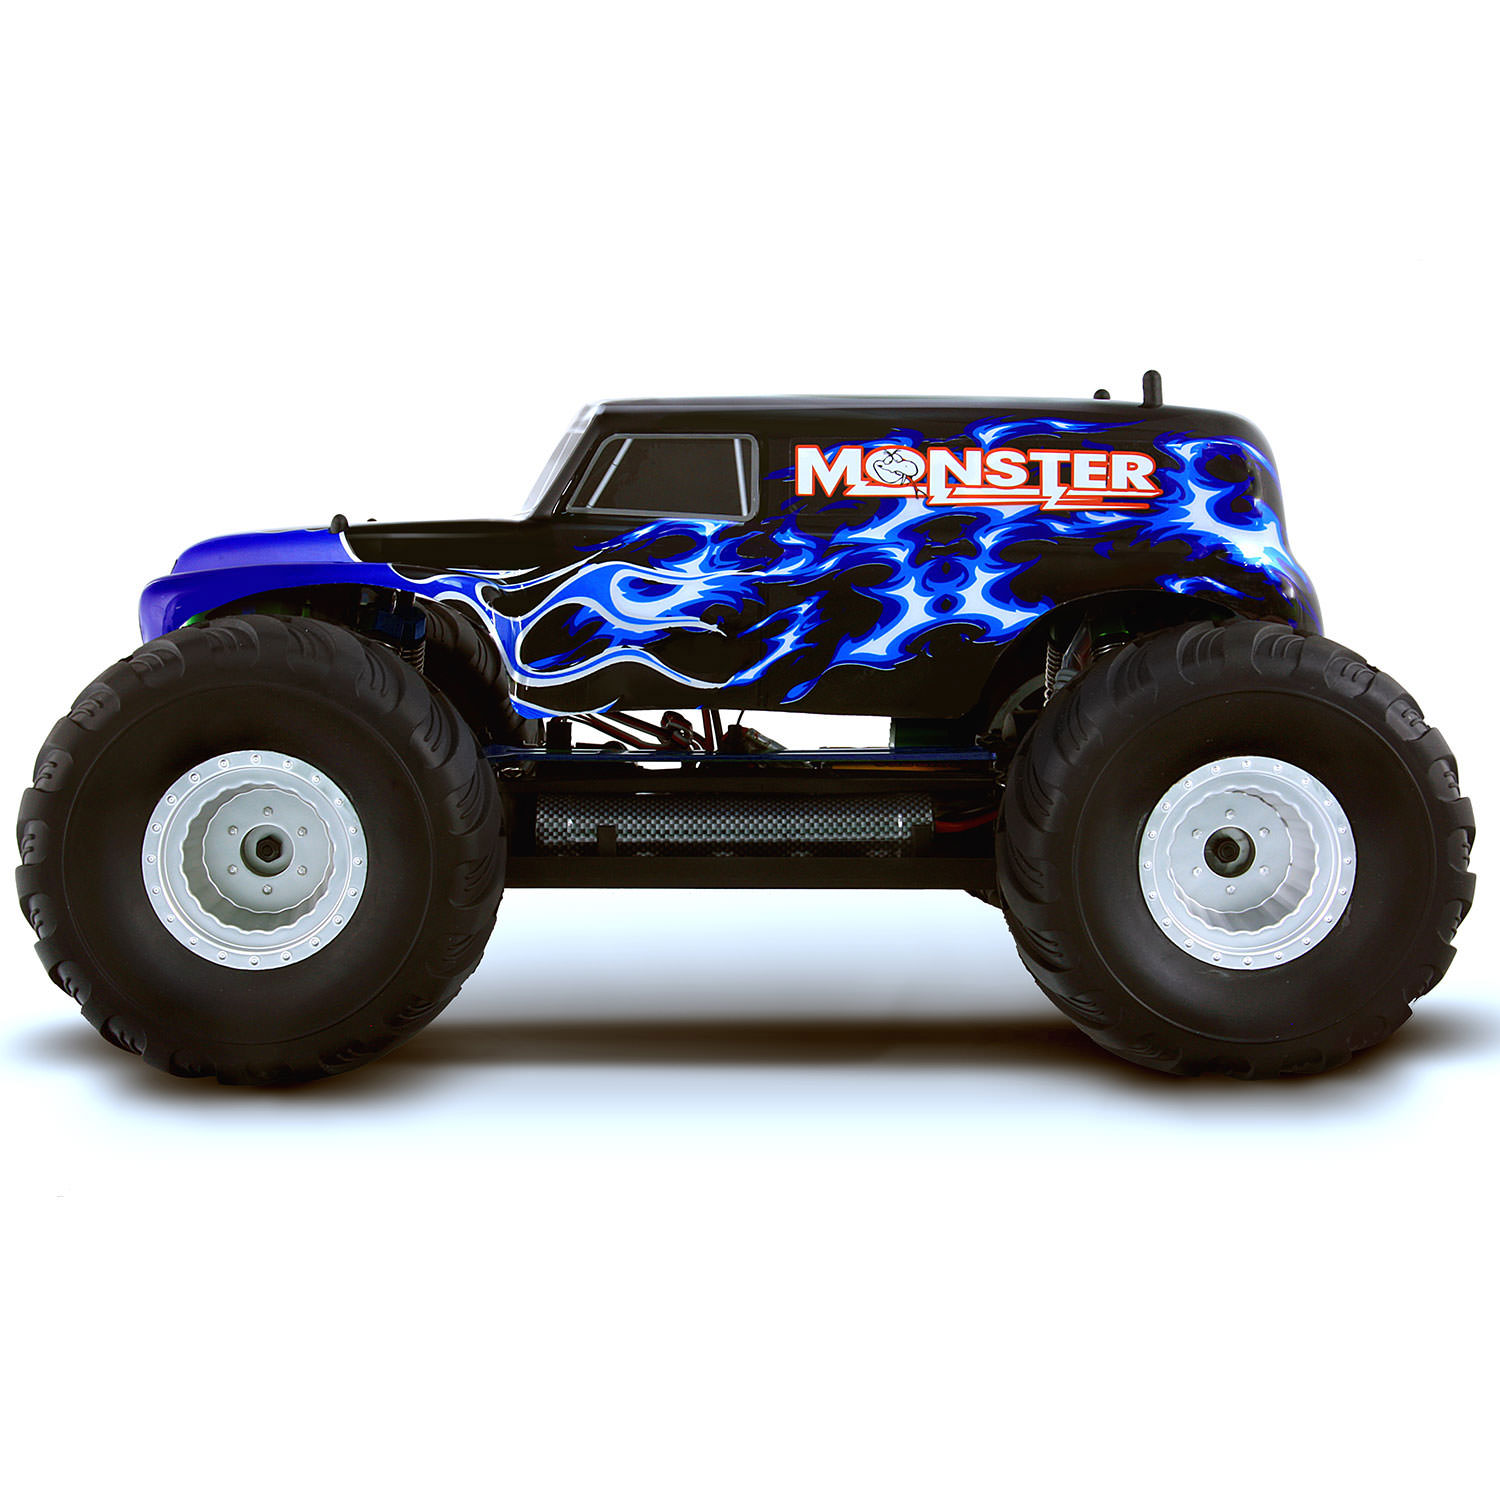 HSP Monster Truck Special Edition Blue RC Truck at Hobby Warehouse on